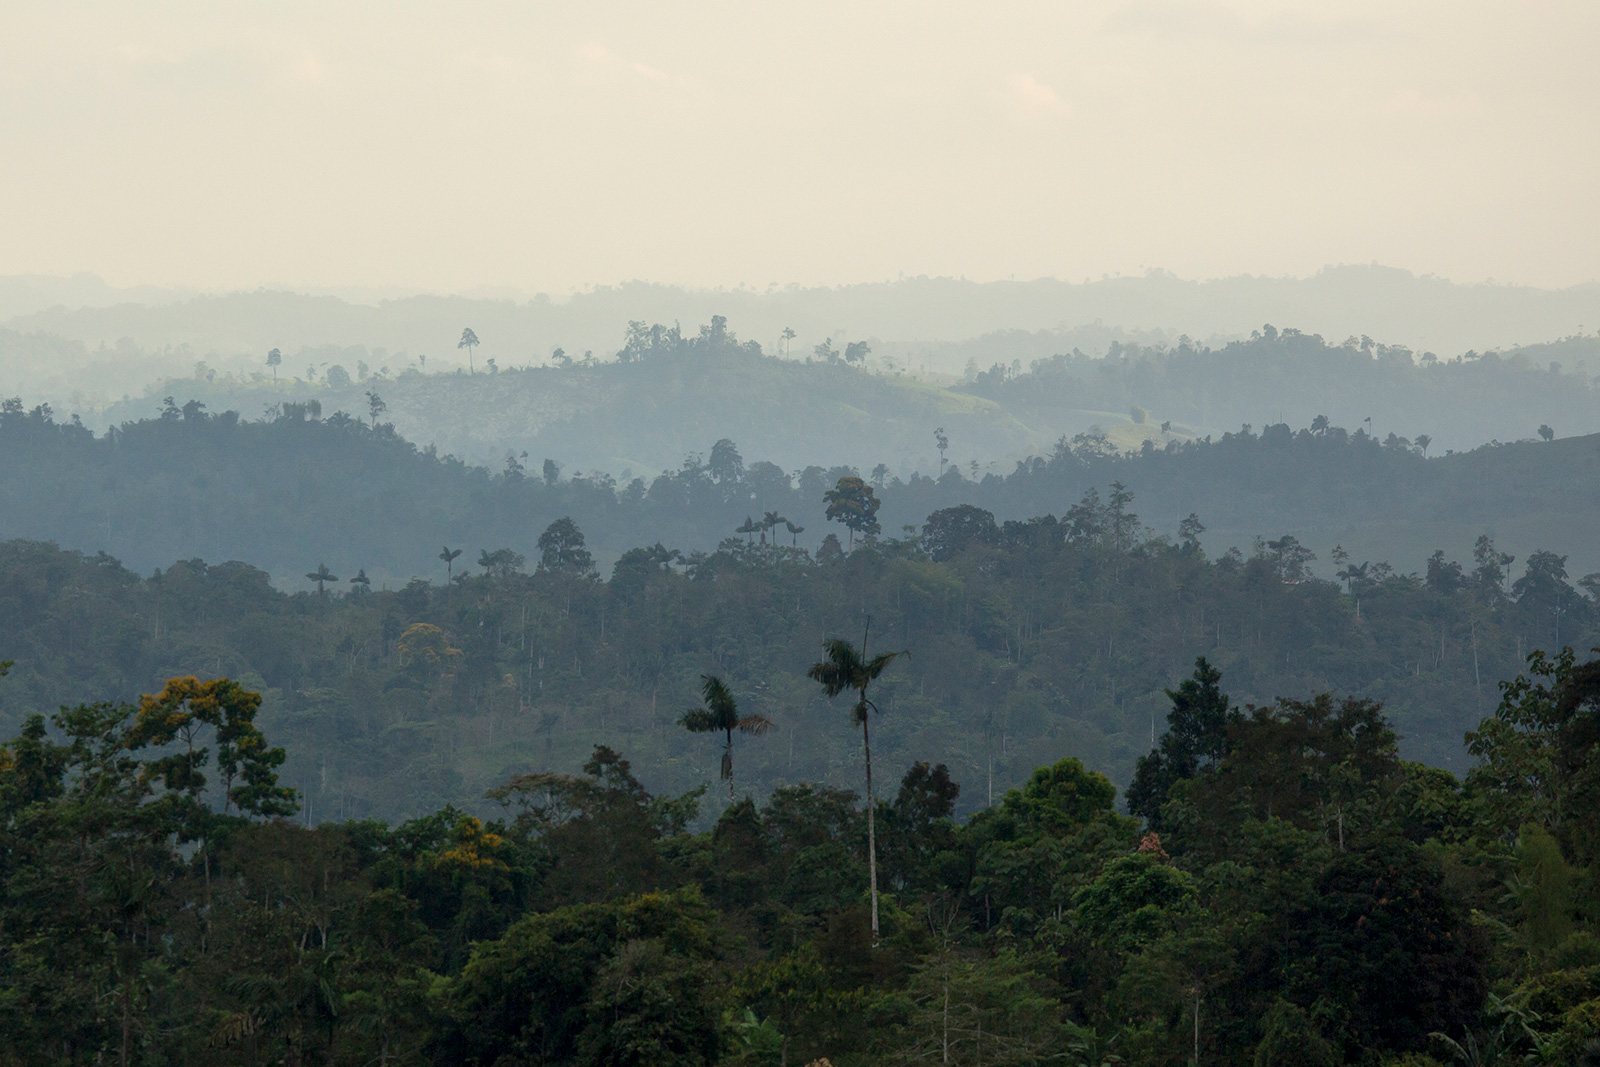 A distant view of the hilly forest landscape